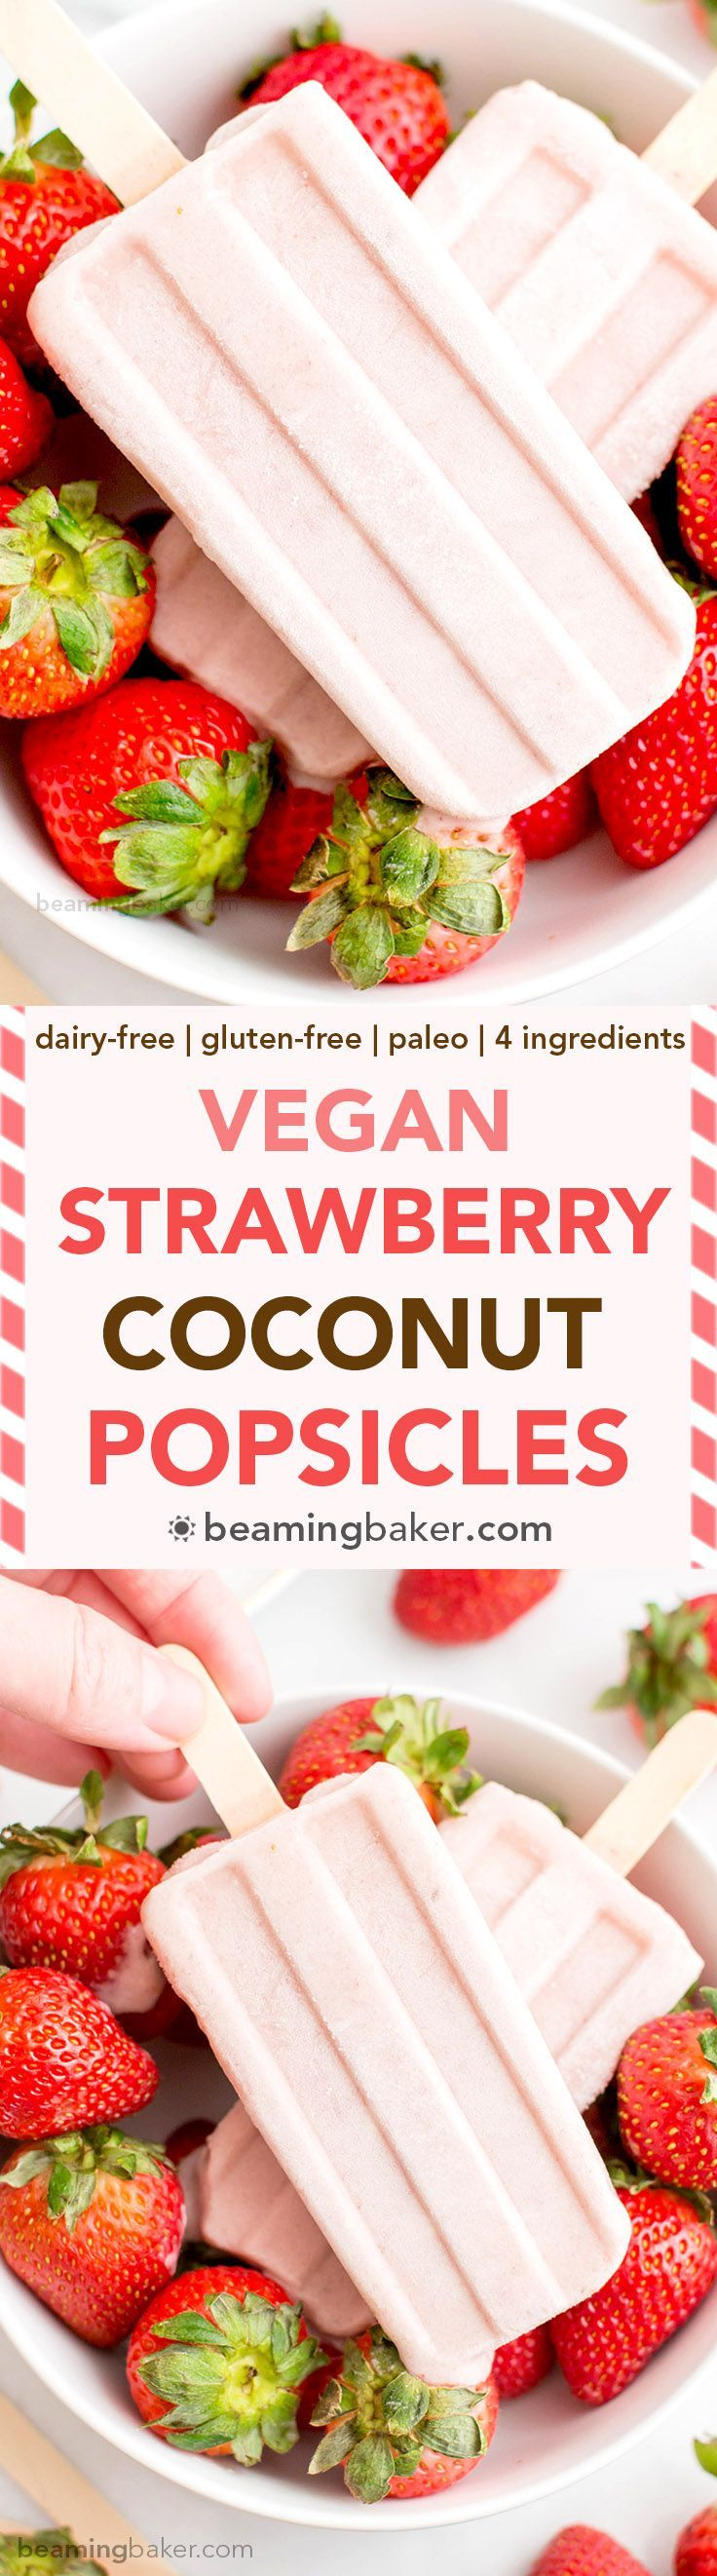 Vegan Strawberry Coconut Popsicles A 4 Ingredient Plant Based